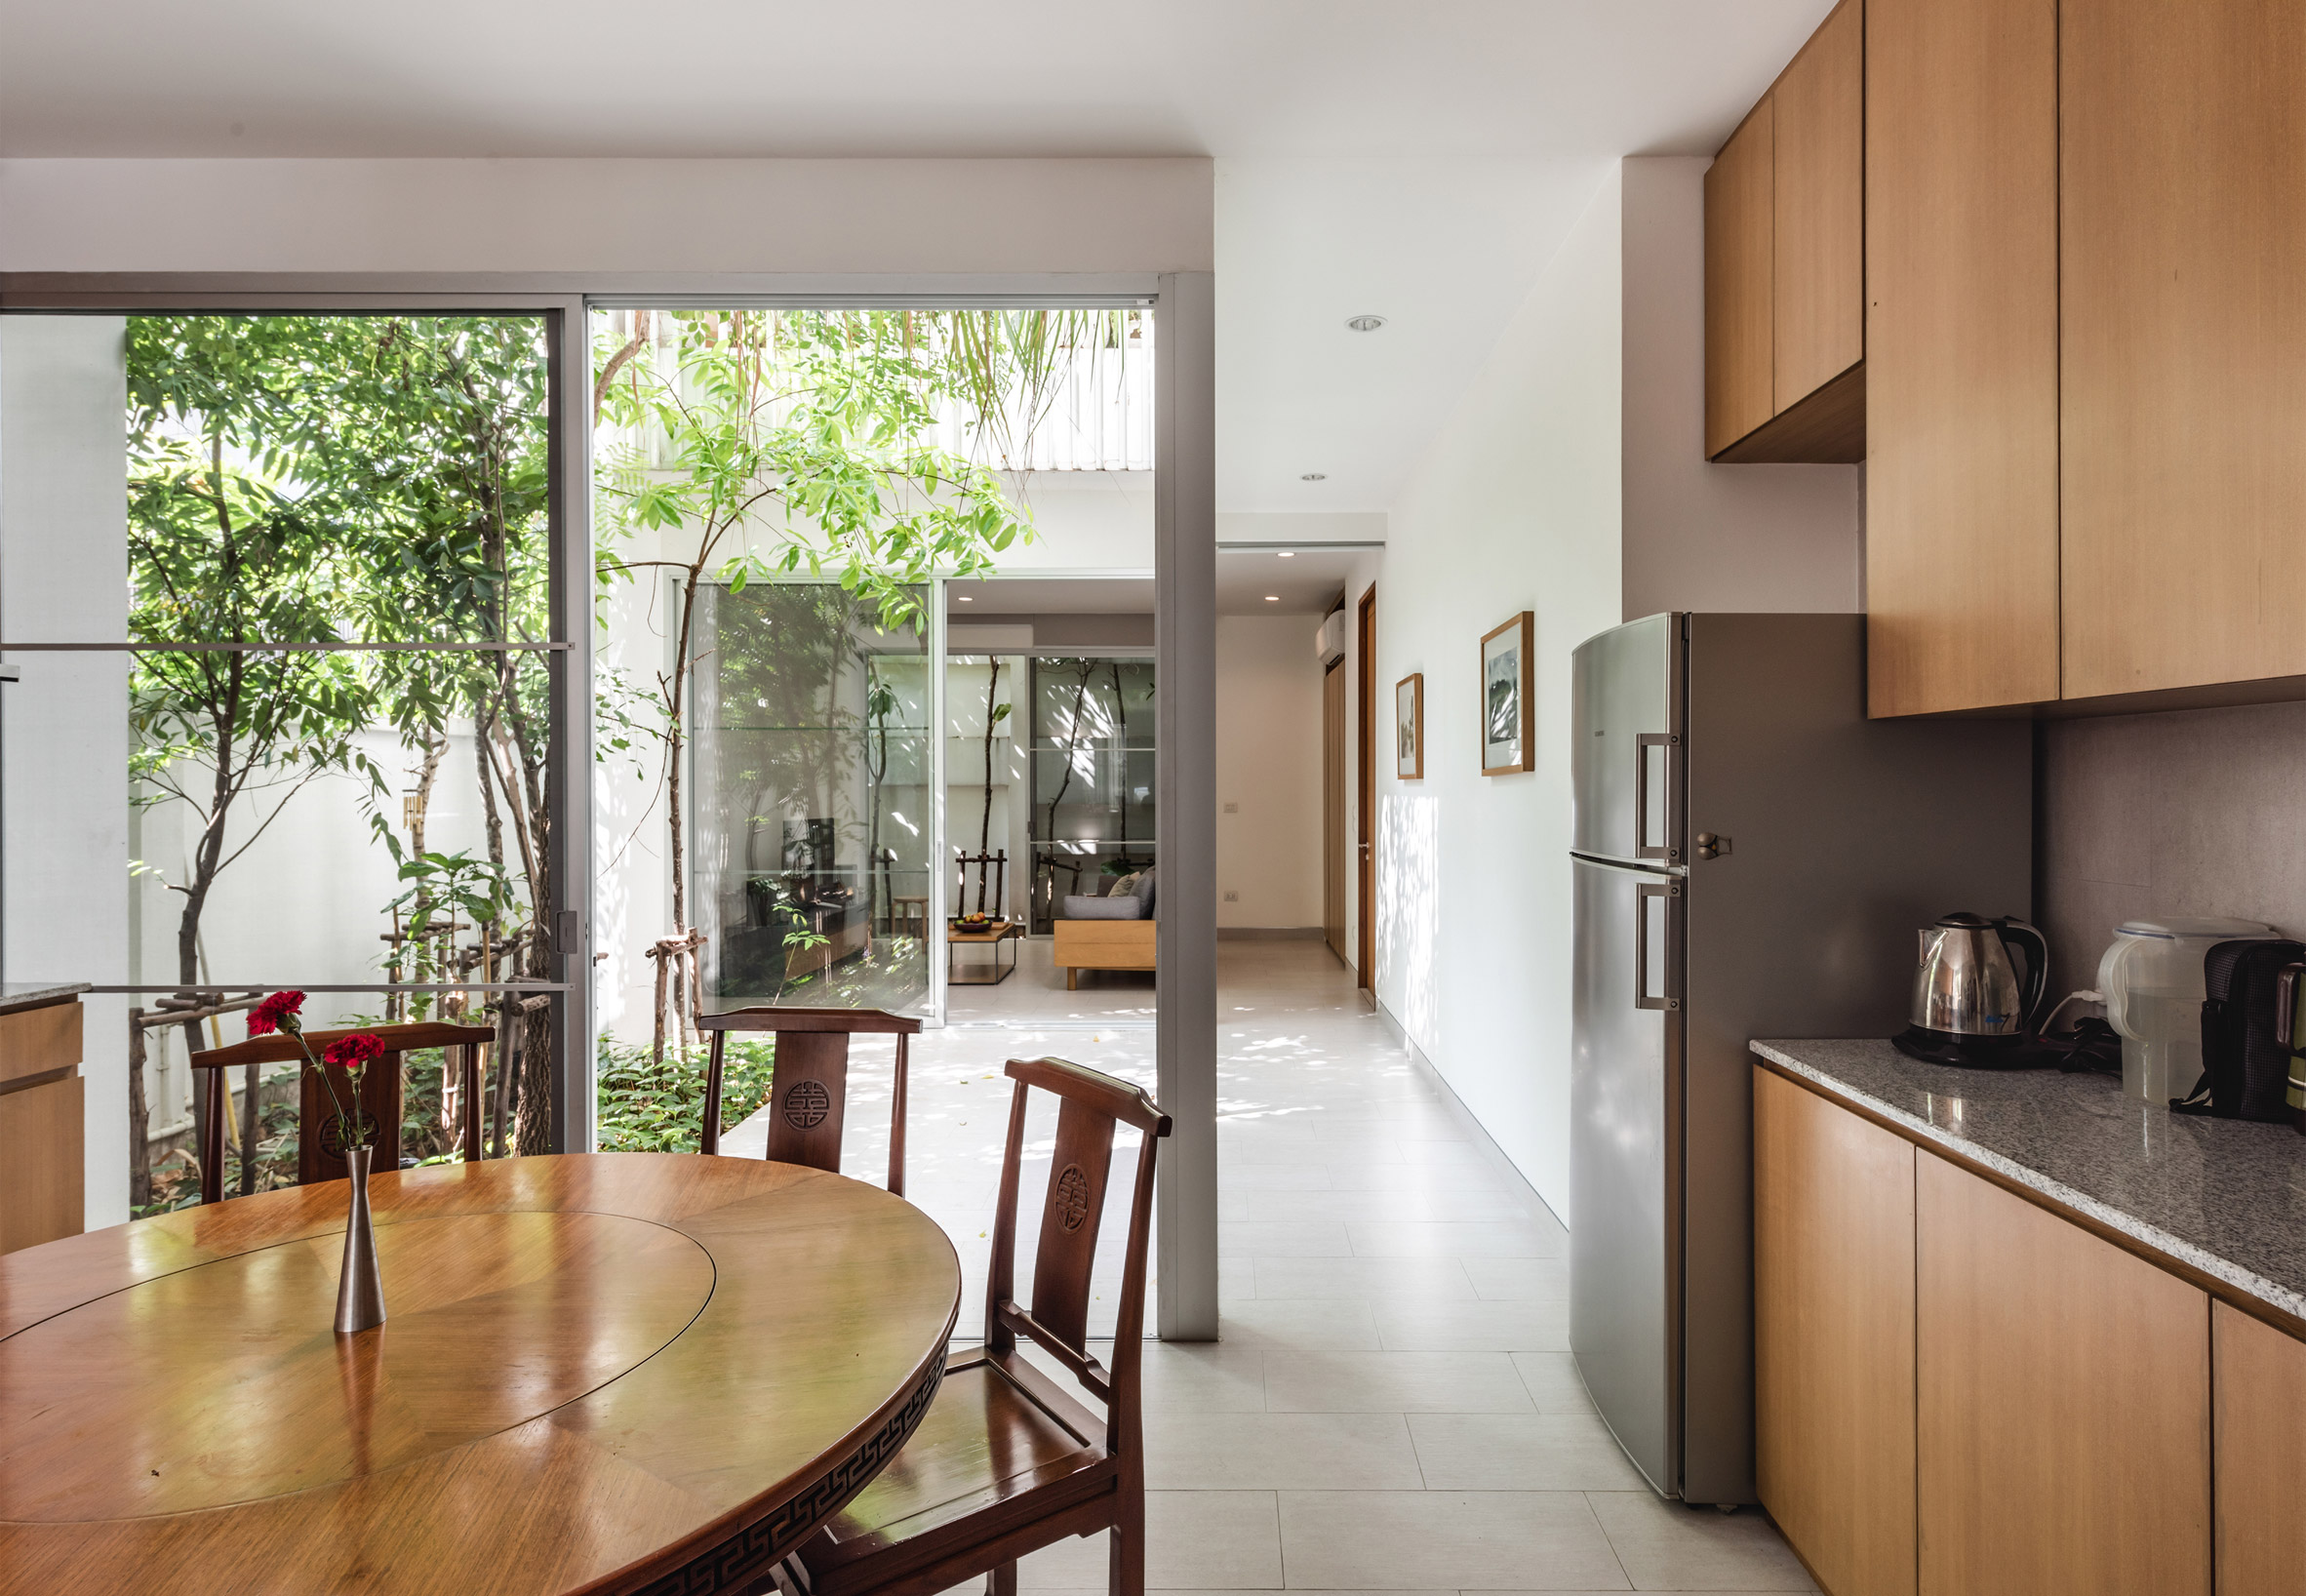 Kitchen and internal courtyard of the Forest House by Shma Company